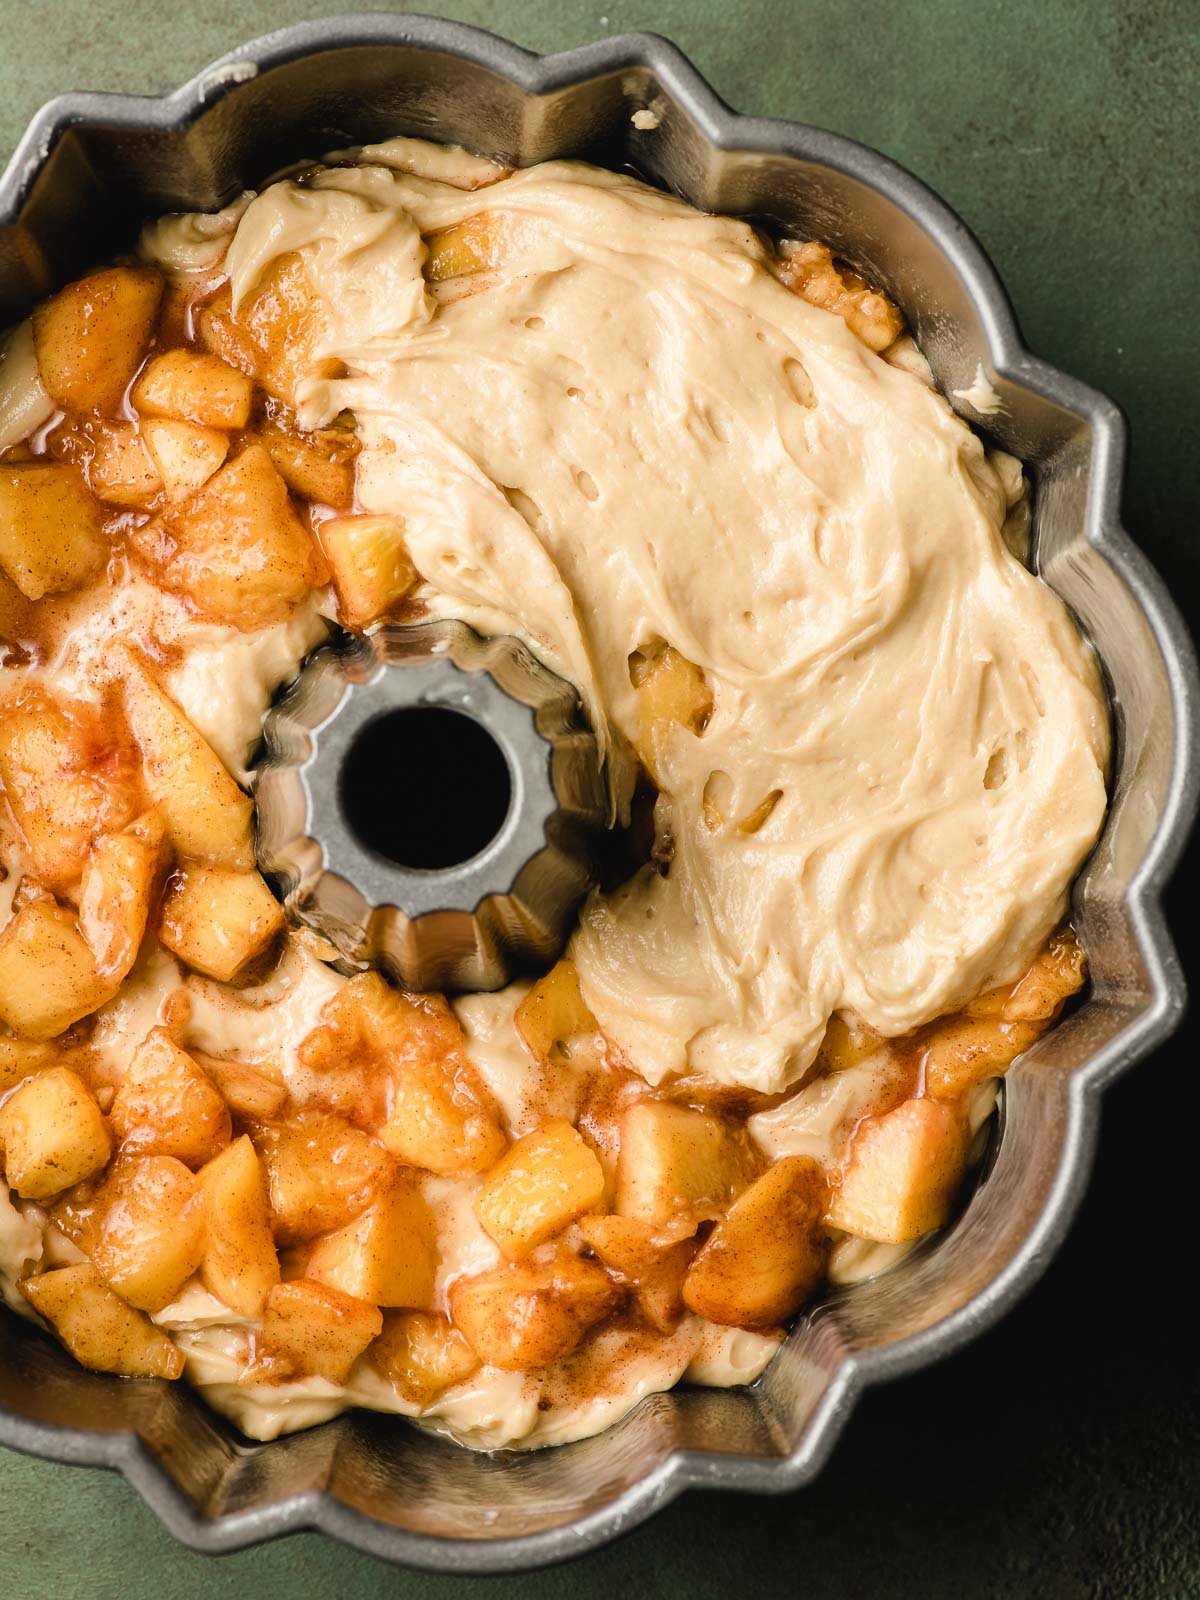 Diced peaches and cake batter layered in a bundt pan.